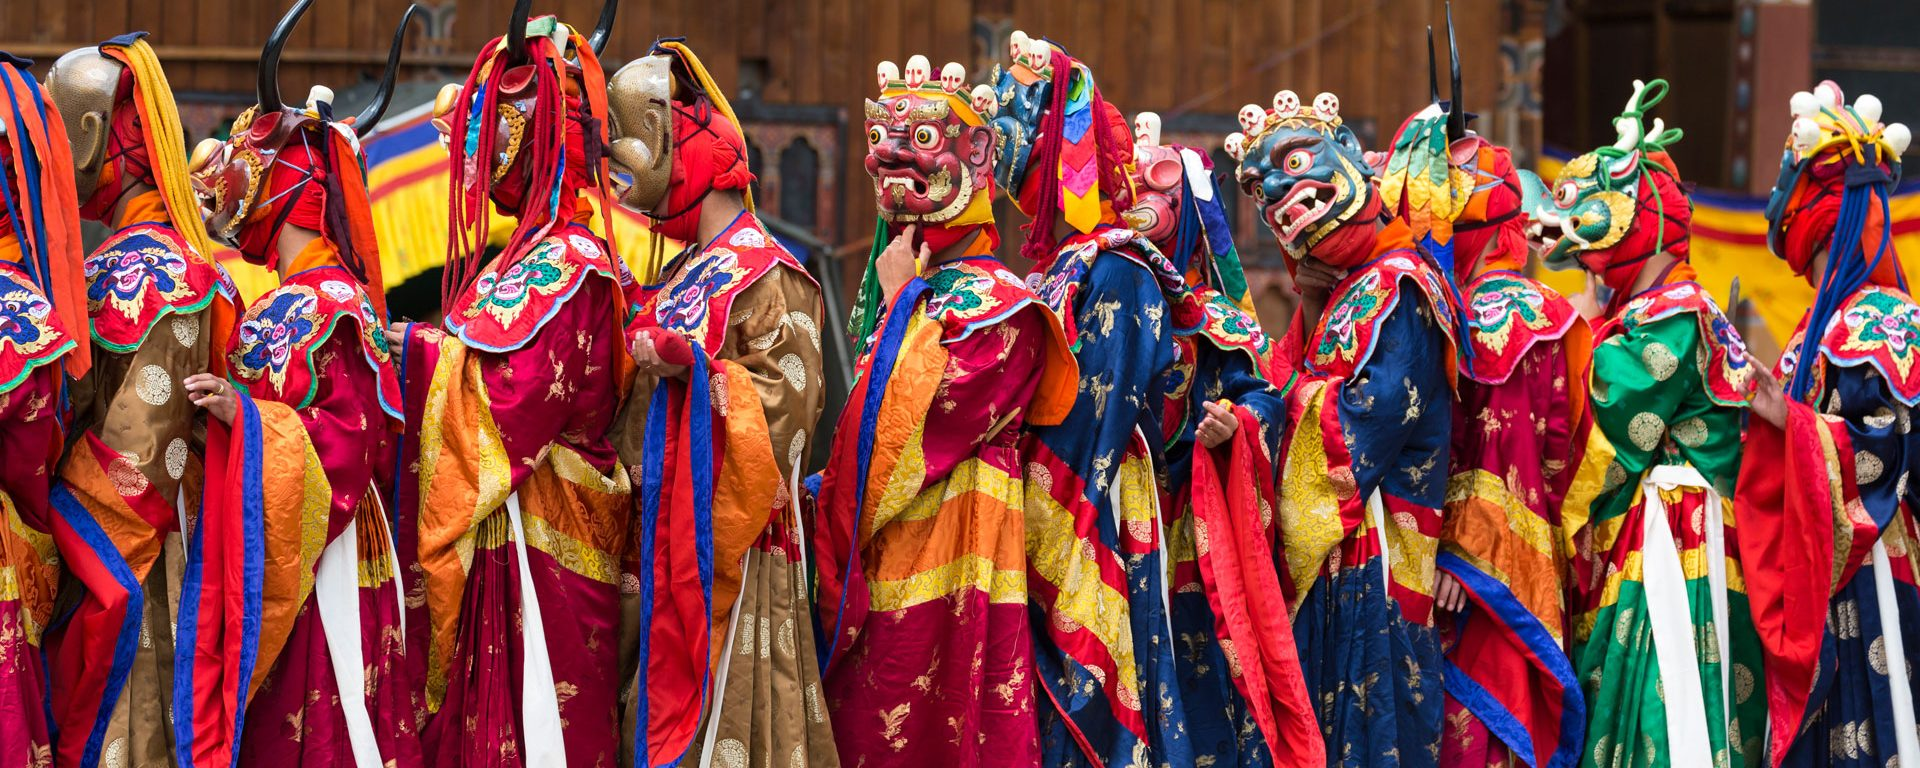 Masked dancers performing 'The Dance of the 16 Drum Beaters from Dramitse', at the Haa Tshechu, Bhutan